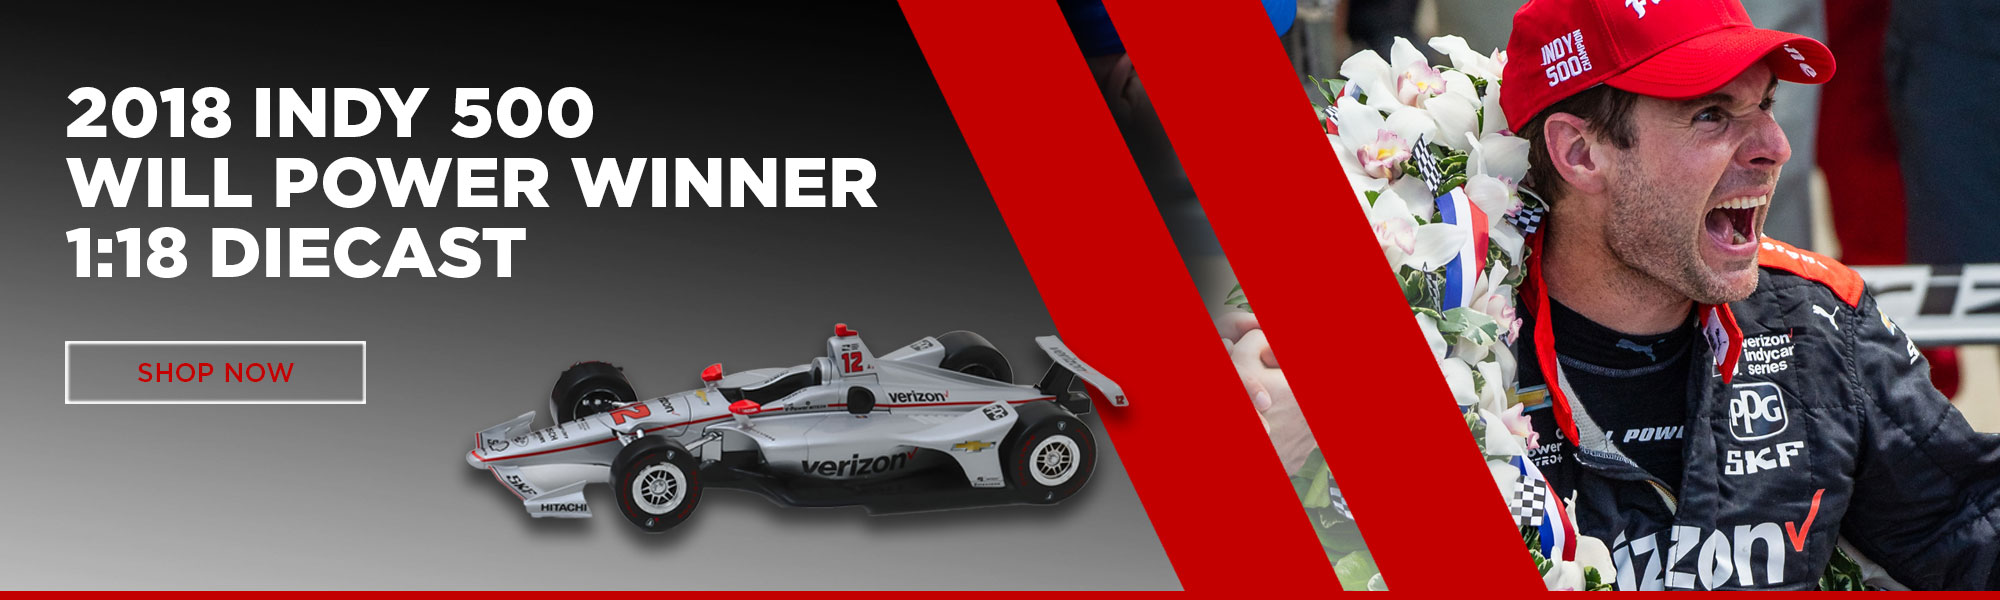 homepage-indycar-will-power-102nd-diecast.jpg